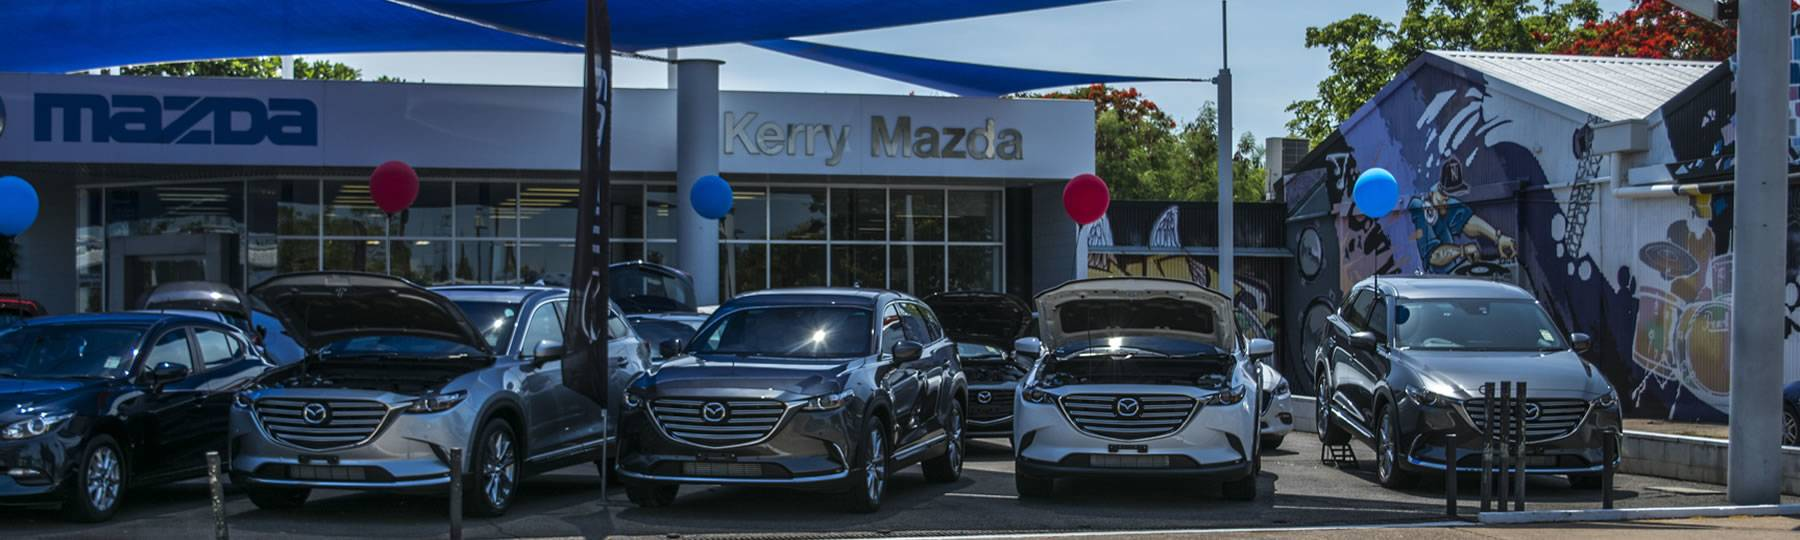 Kerry Mazda - Visit Us in Darwin